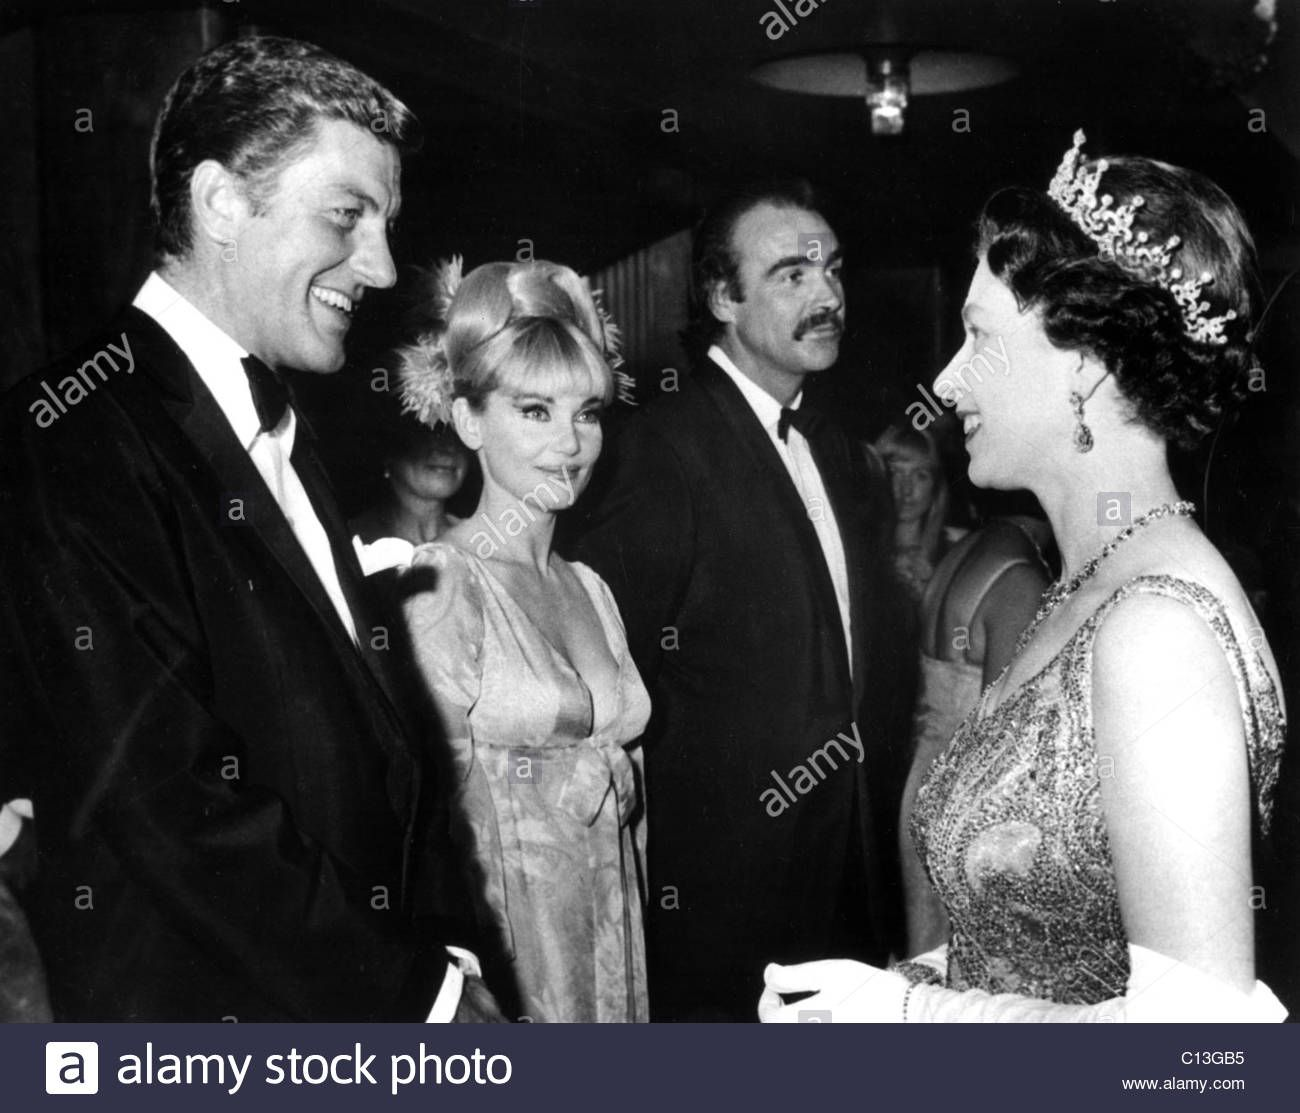 Queen Elizabeth Ii Meeting Dick Van Dyke Diane Cilento And Sean